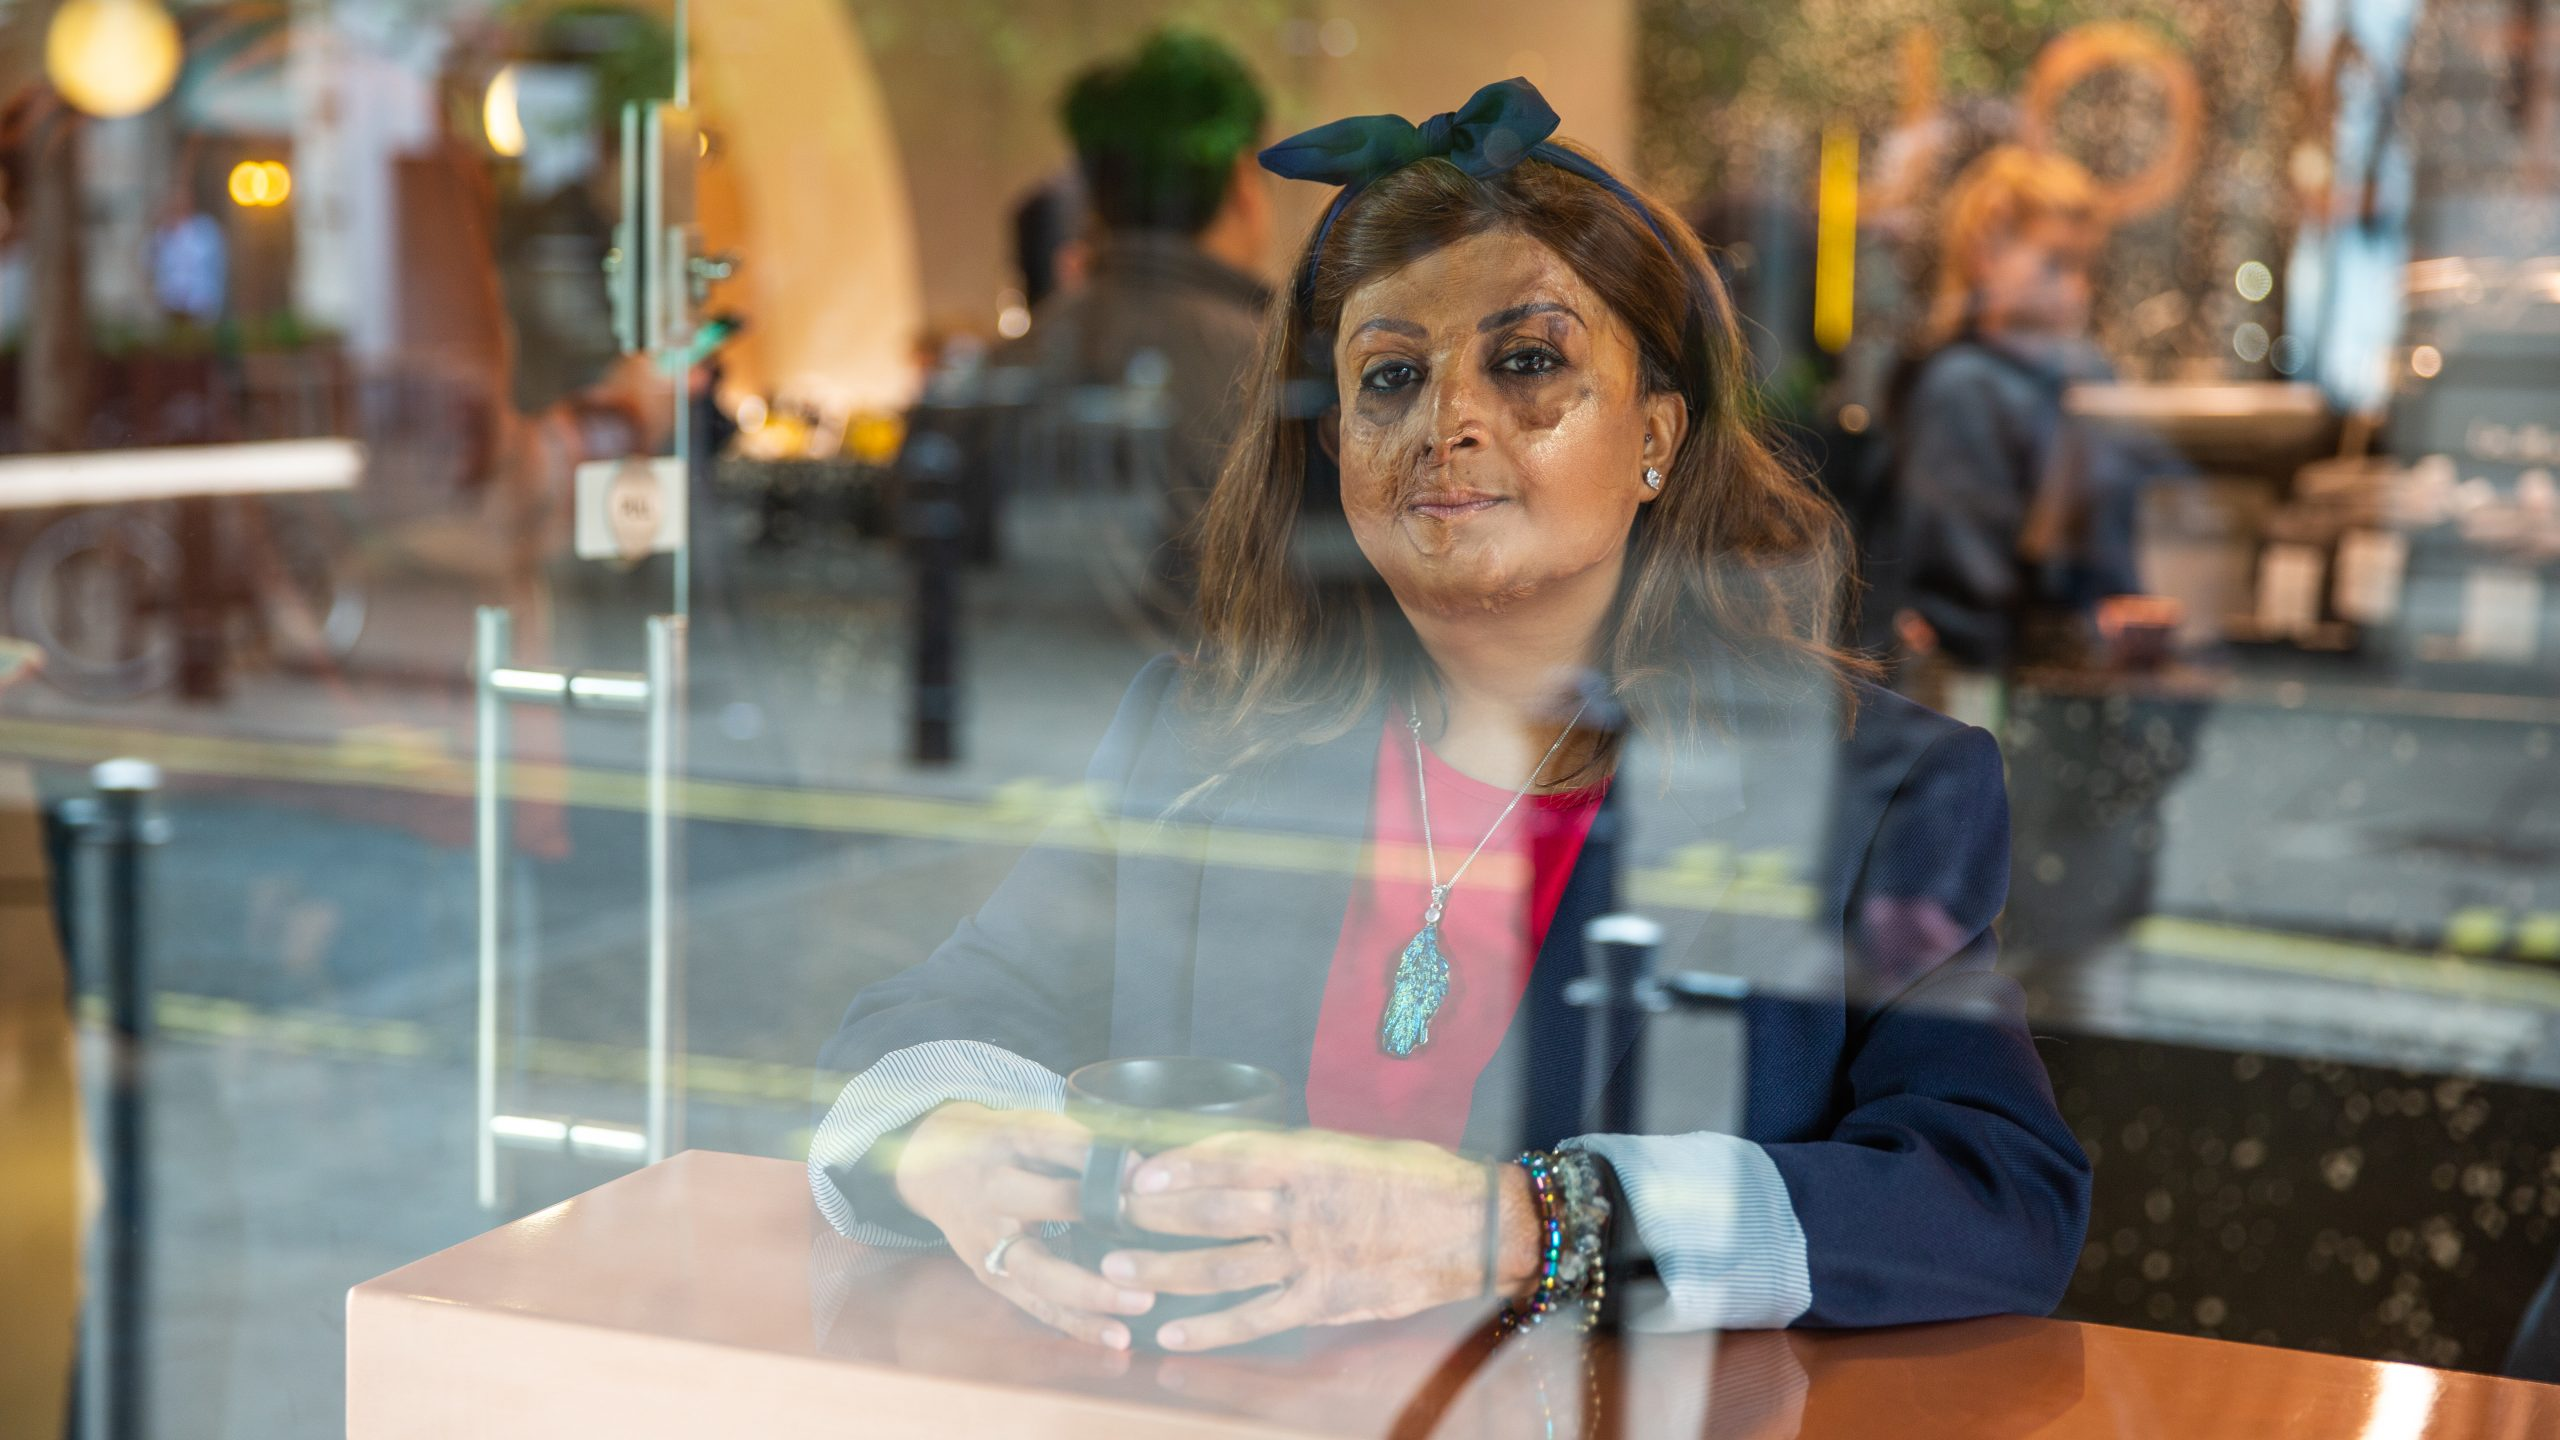 A woman with facial scarring sits in a coffee shop window, holding a glass